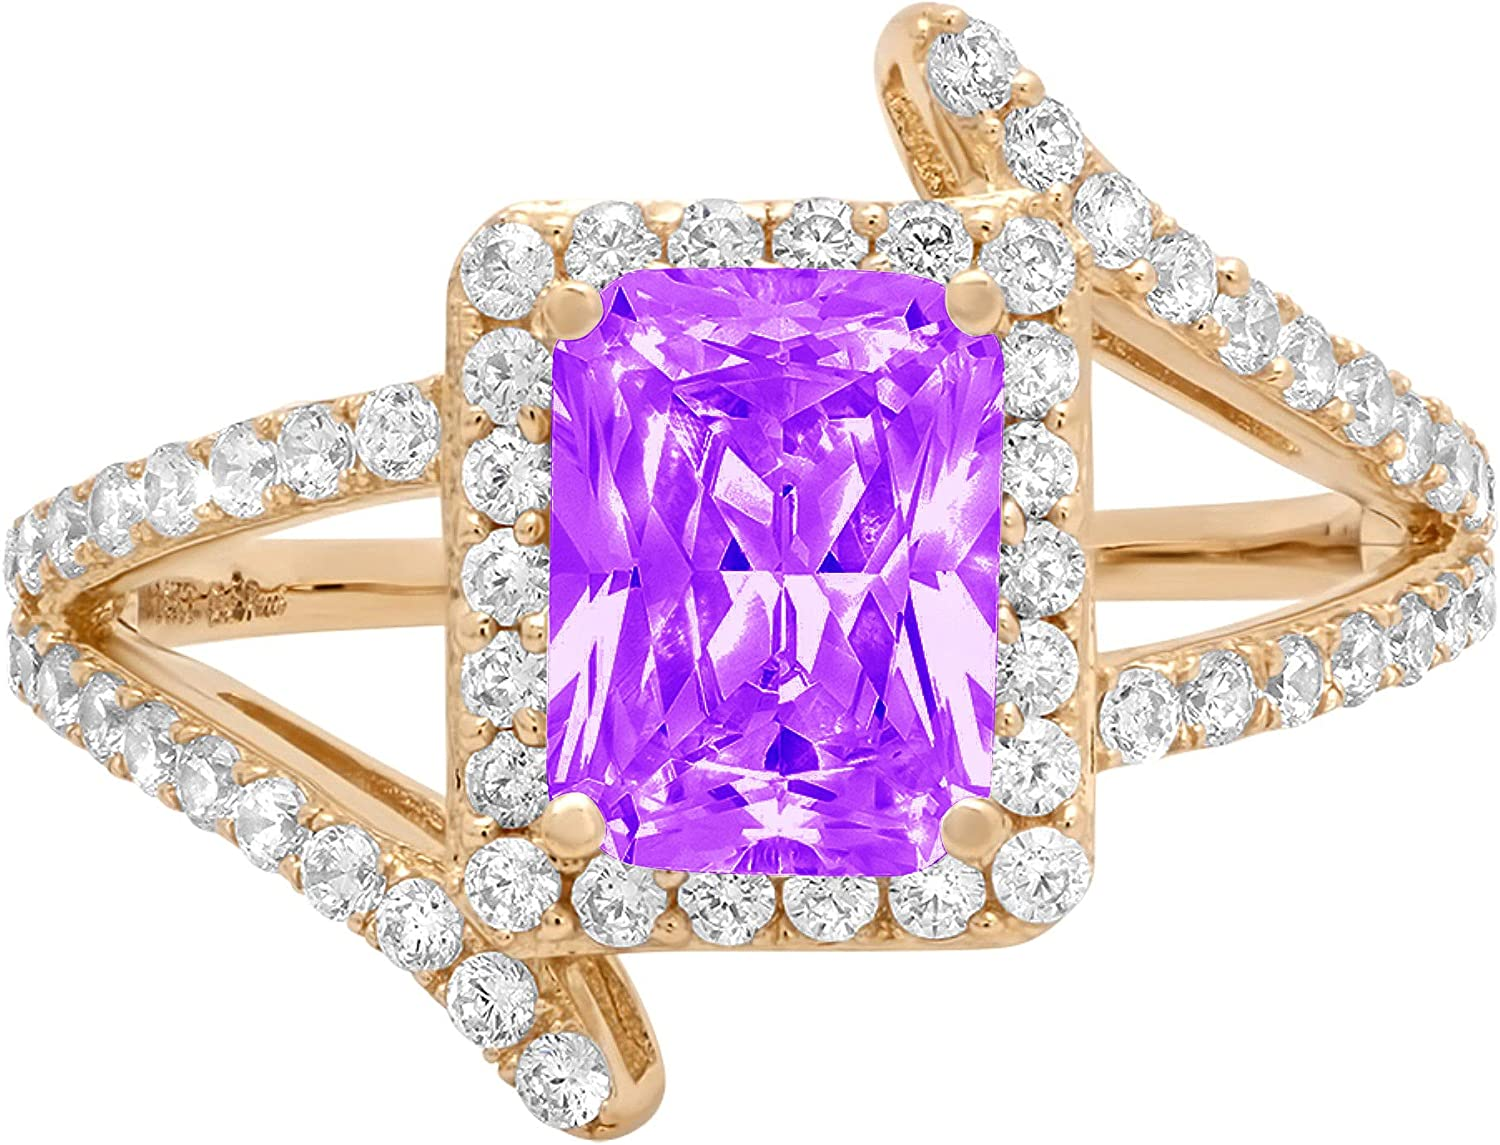 2.04ct Emerald Cut Solitaire with Accent Halo Criss Cross Natural Purple Amethyst Gem Stone Ideal VVS1 Engagement Promise Statement Anniversary Bridal Wedding ring 14k Yellow Gold